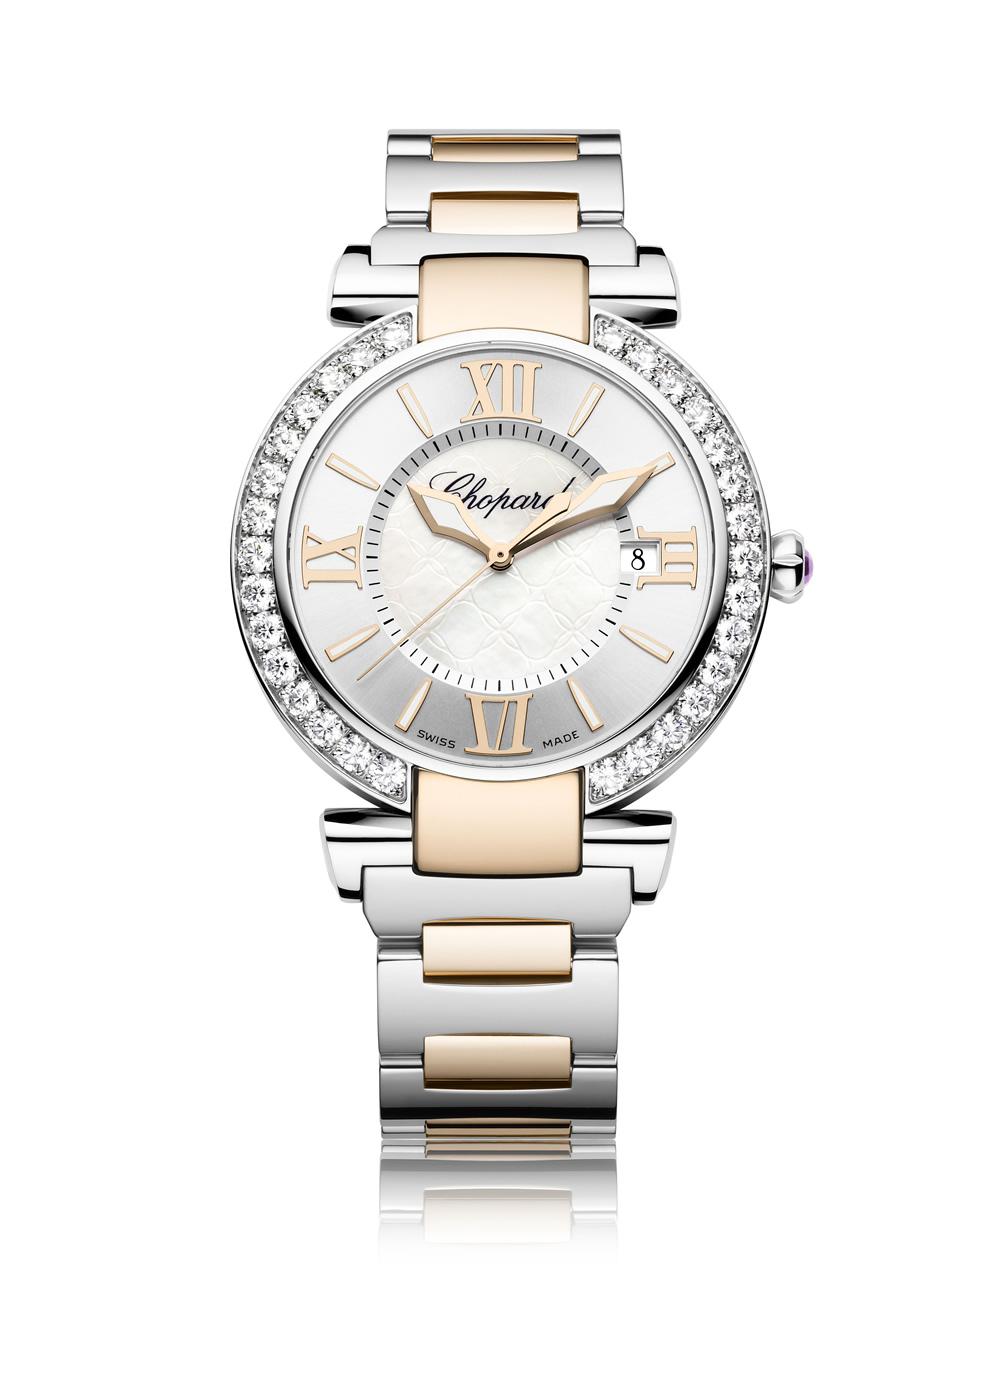 Imperiale Two Tone watch - Imperiale 2 tone watch